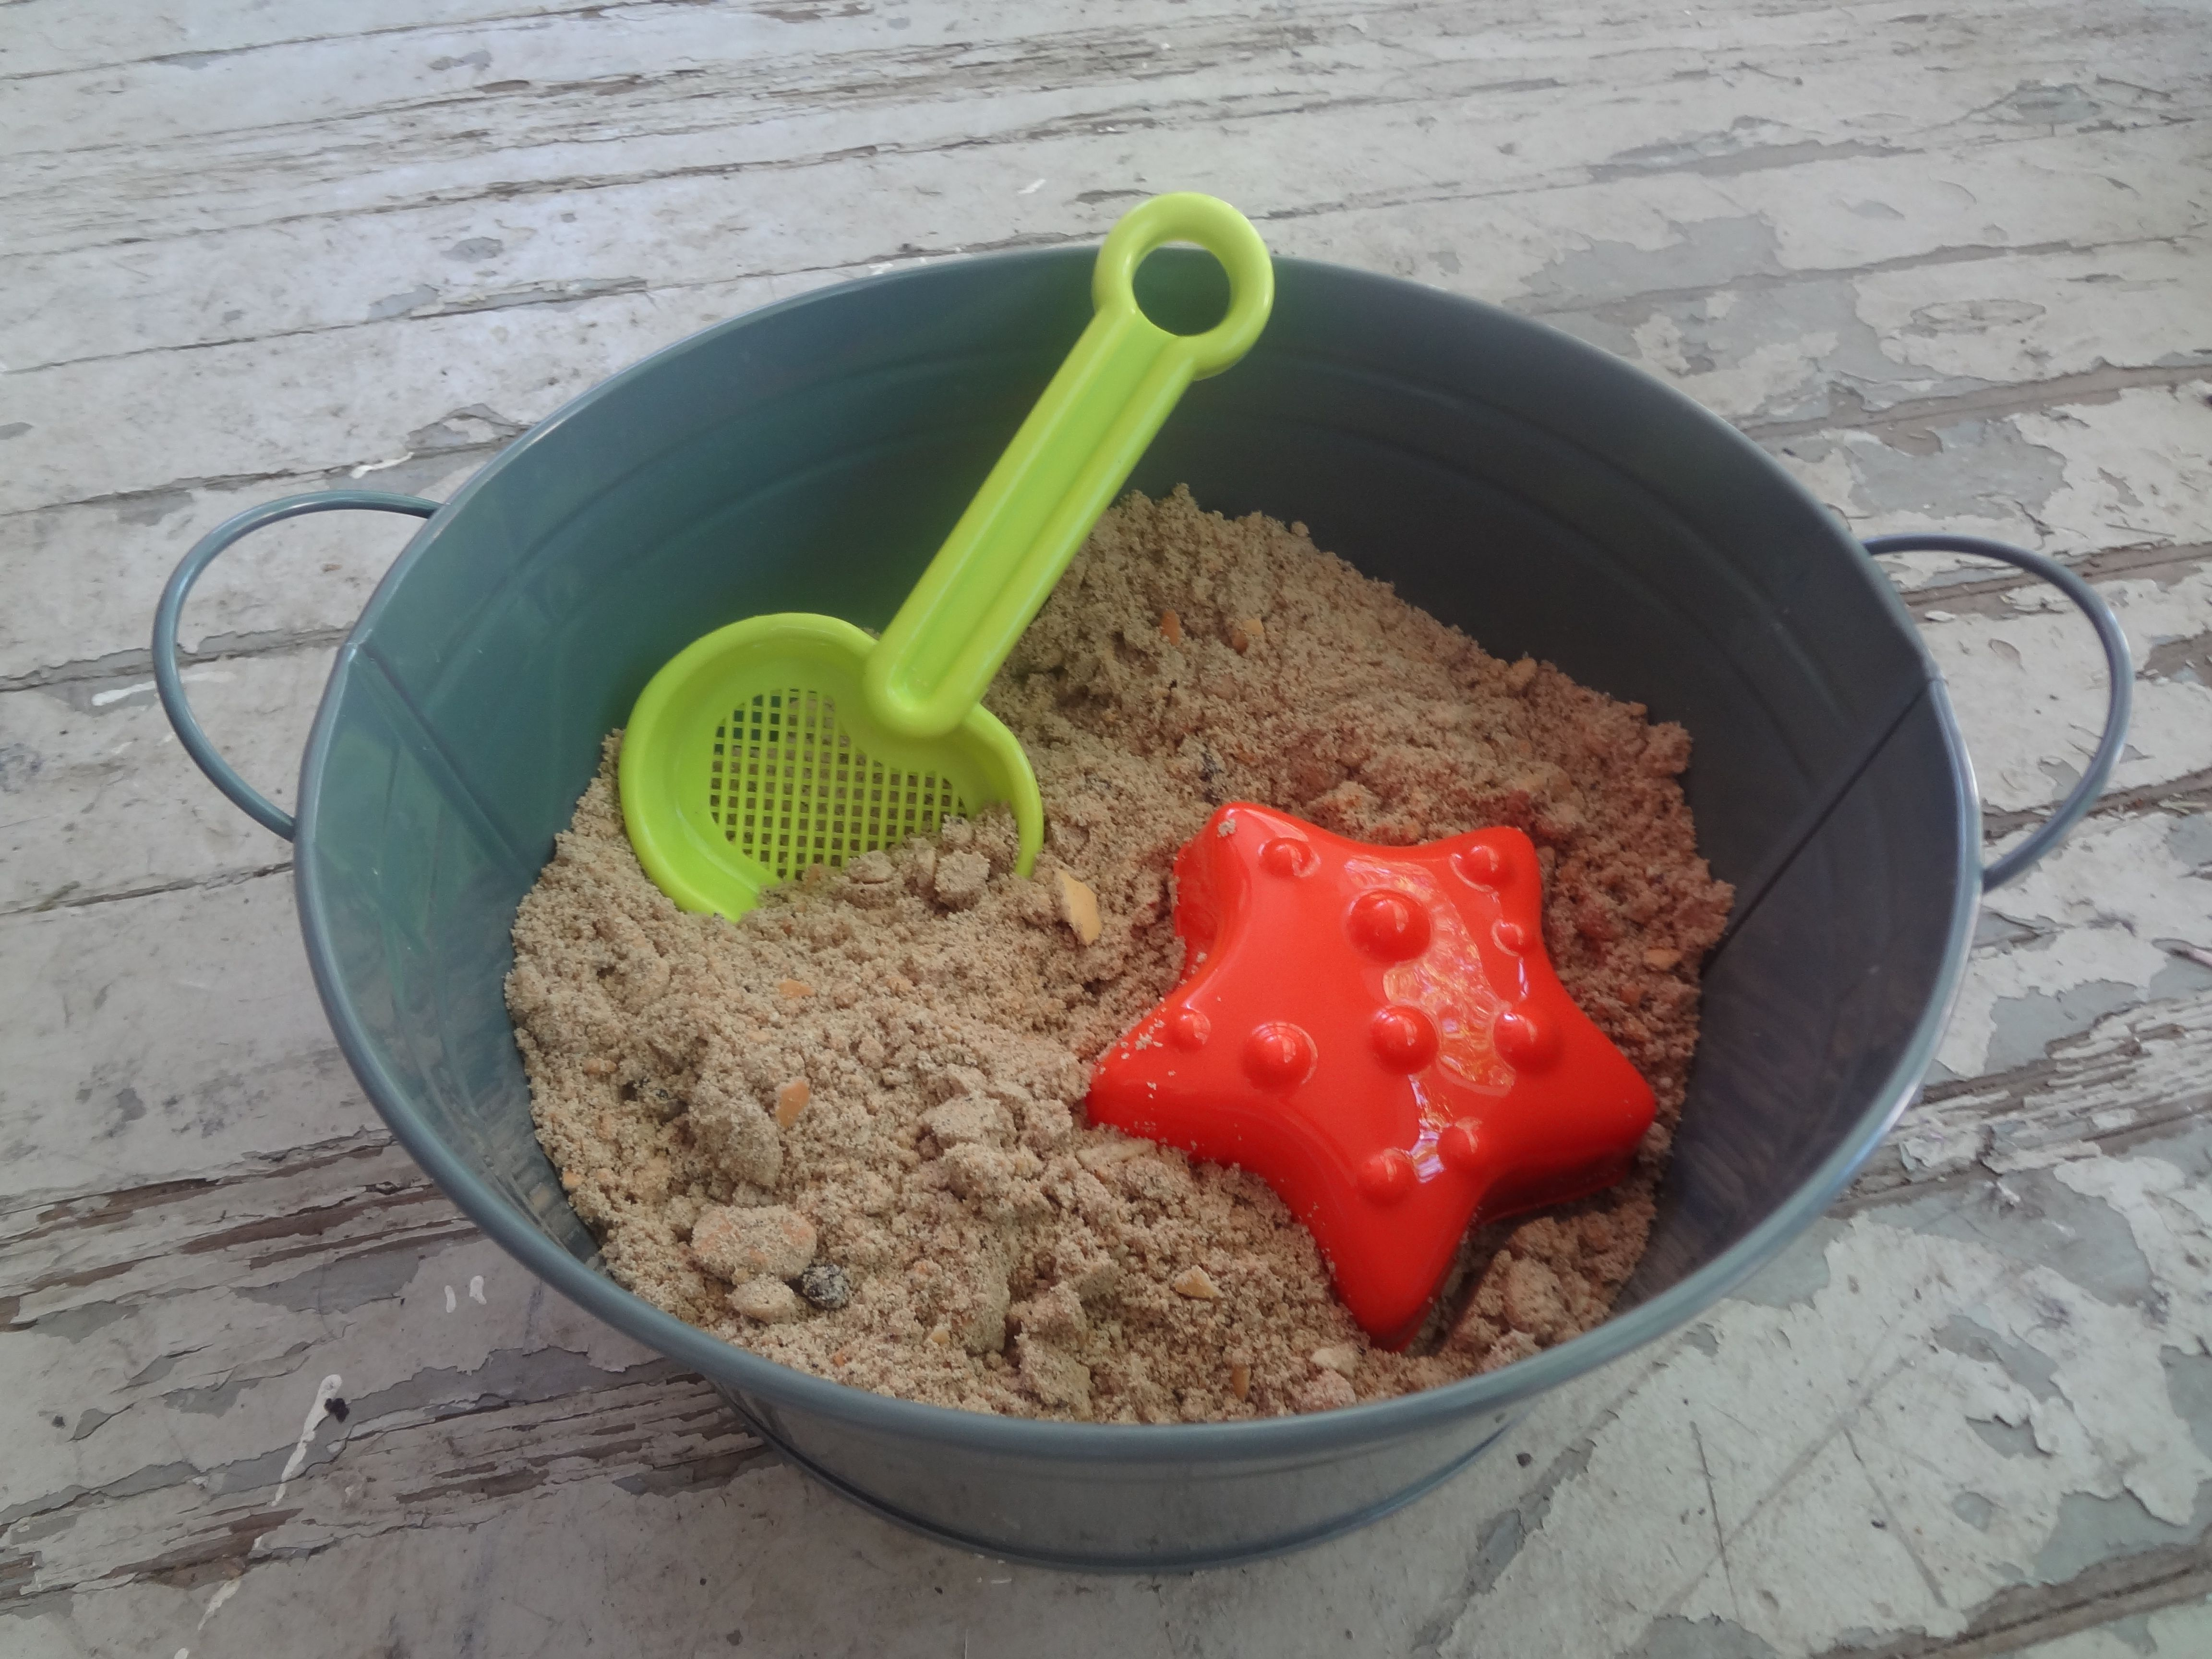 Edible Sandbox.  Made with crushed up cookies so if the kiddos eat it...who cares!